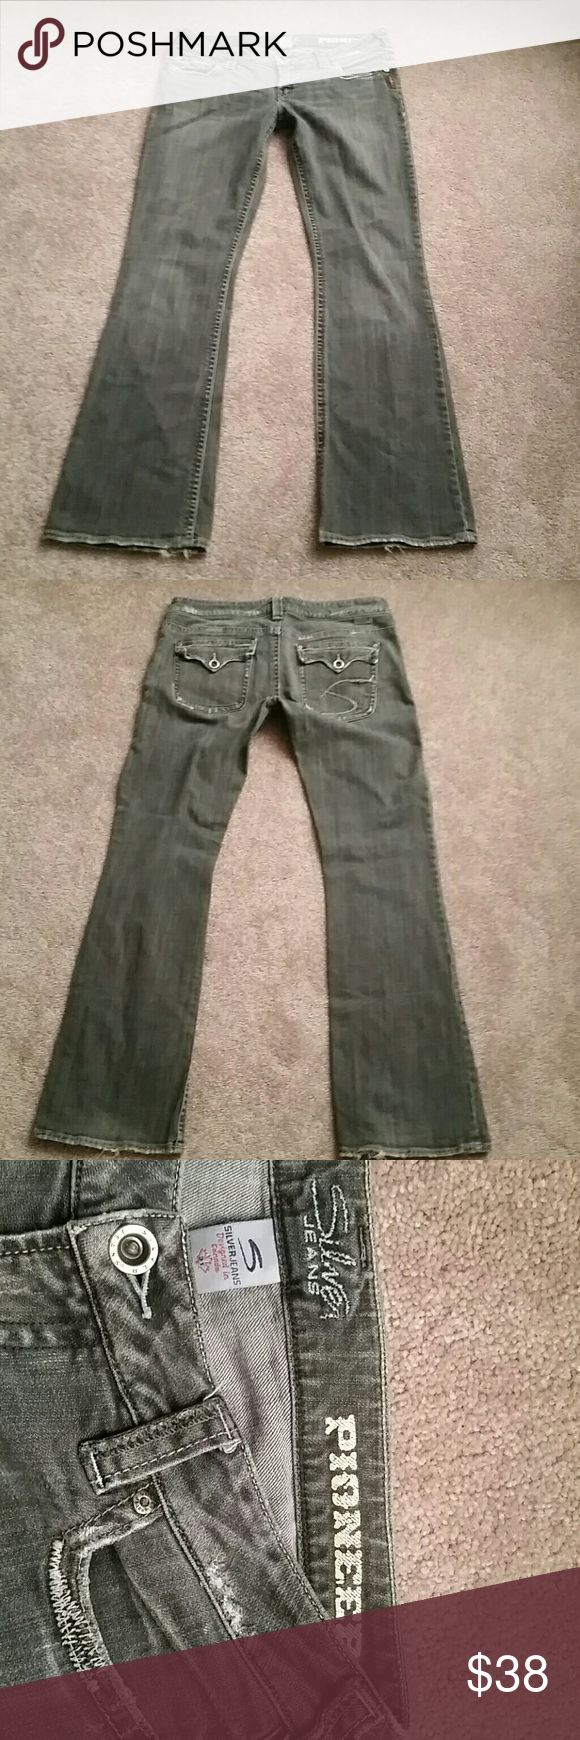 """Women's Silver Pioneer Jean's Grey wash, low rise, good condition,  flap back pockets, 33"""" inseam. Silver Jeans Jeans Boot Cut"""